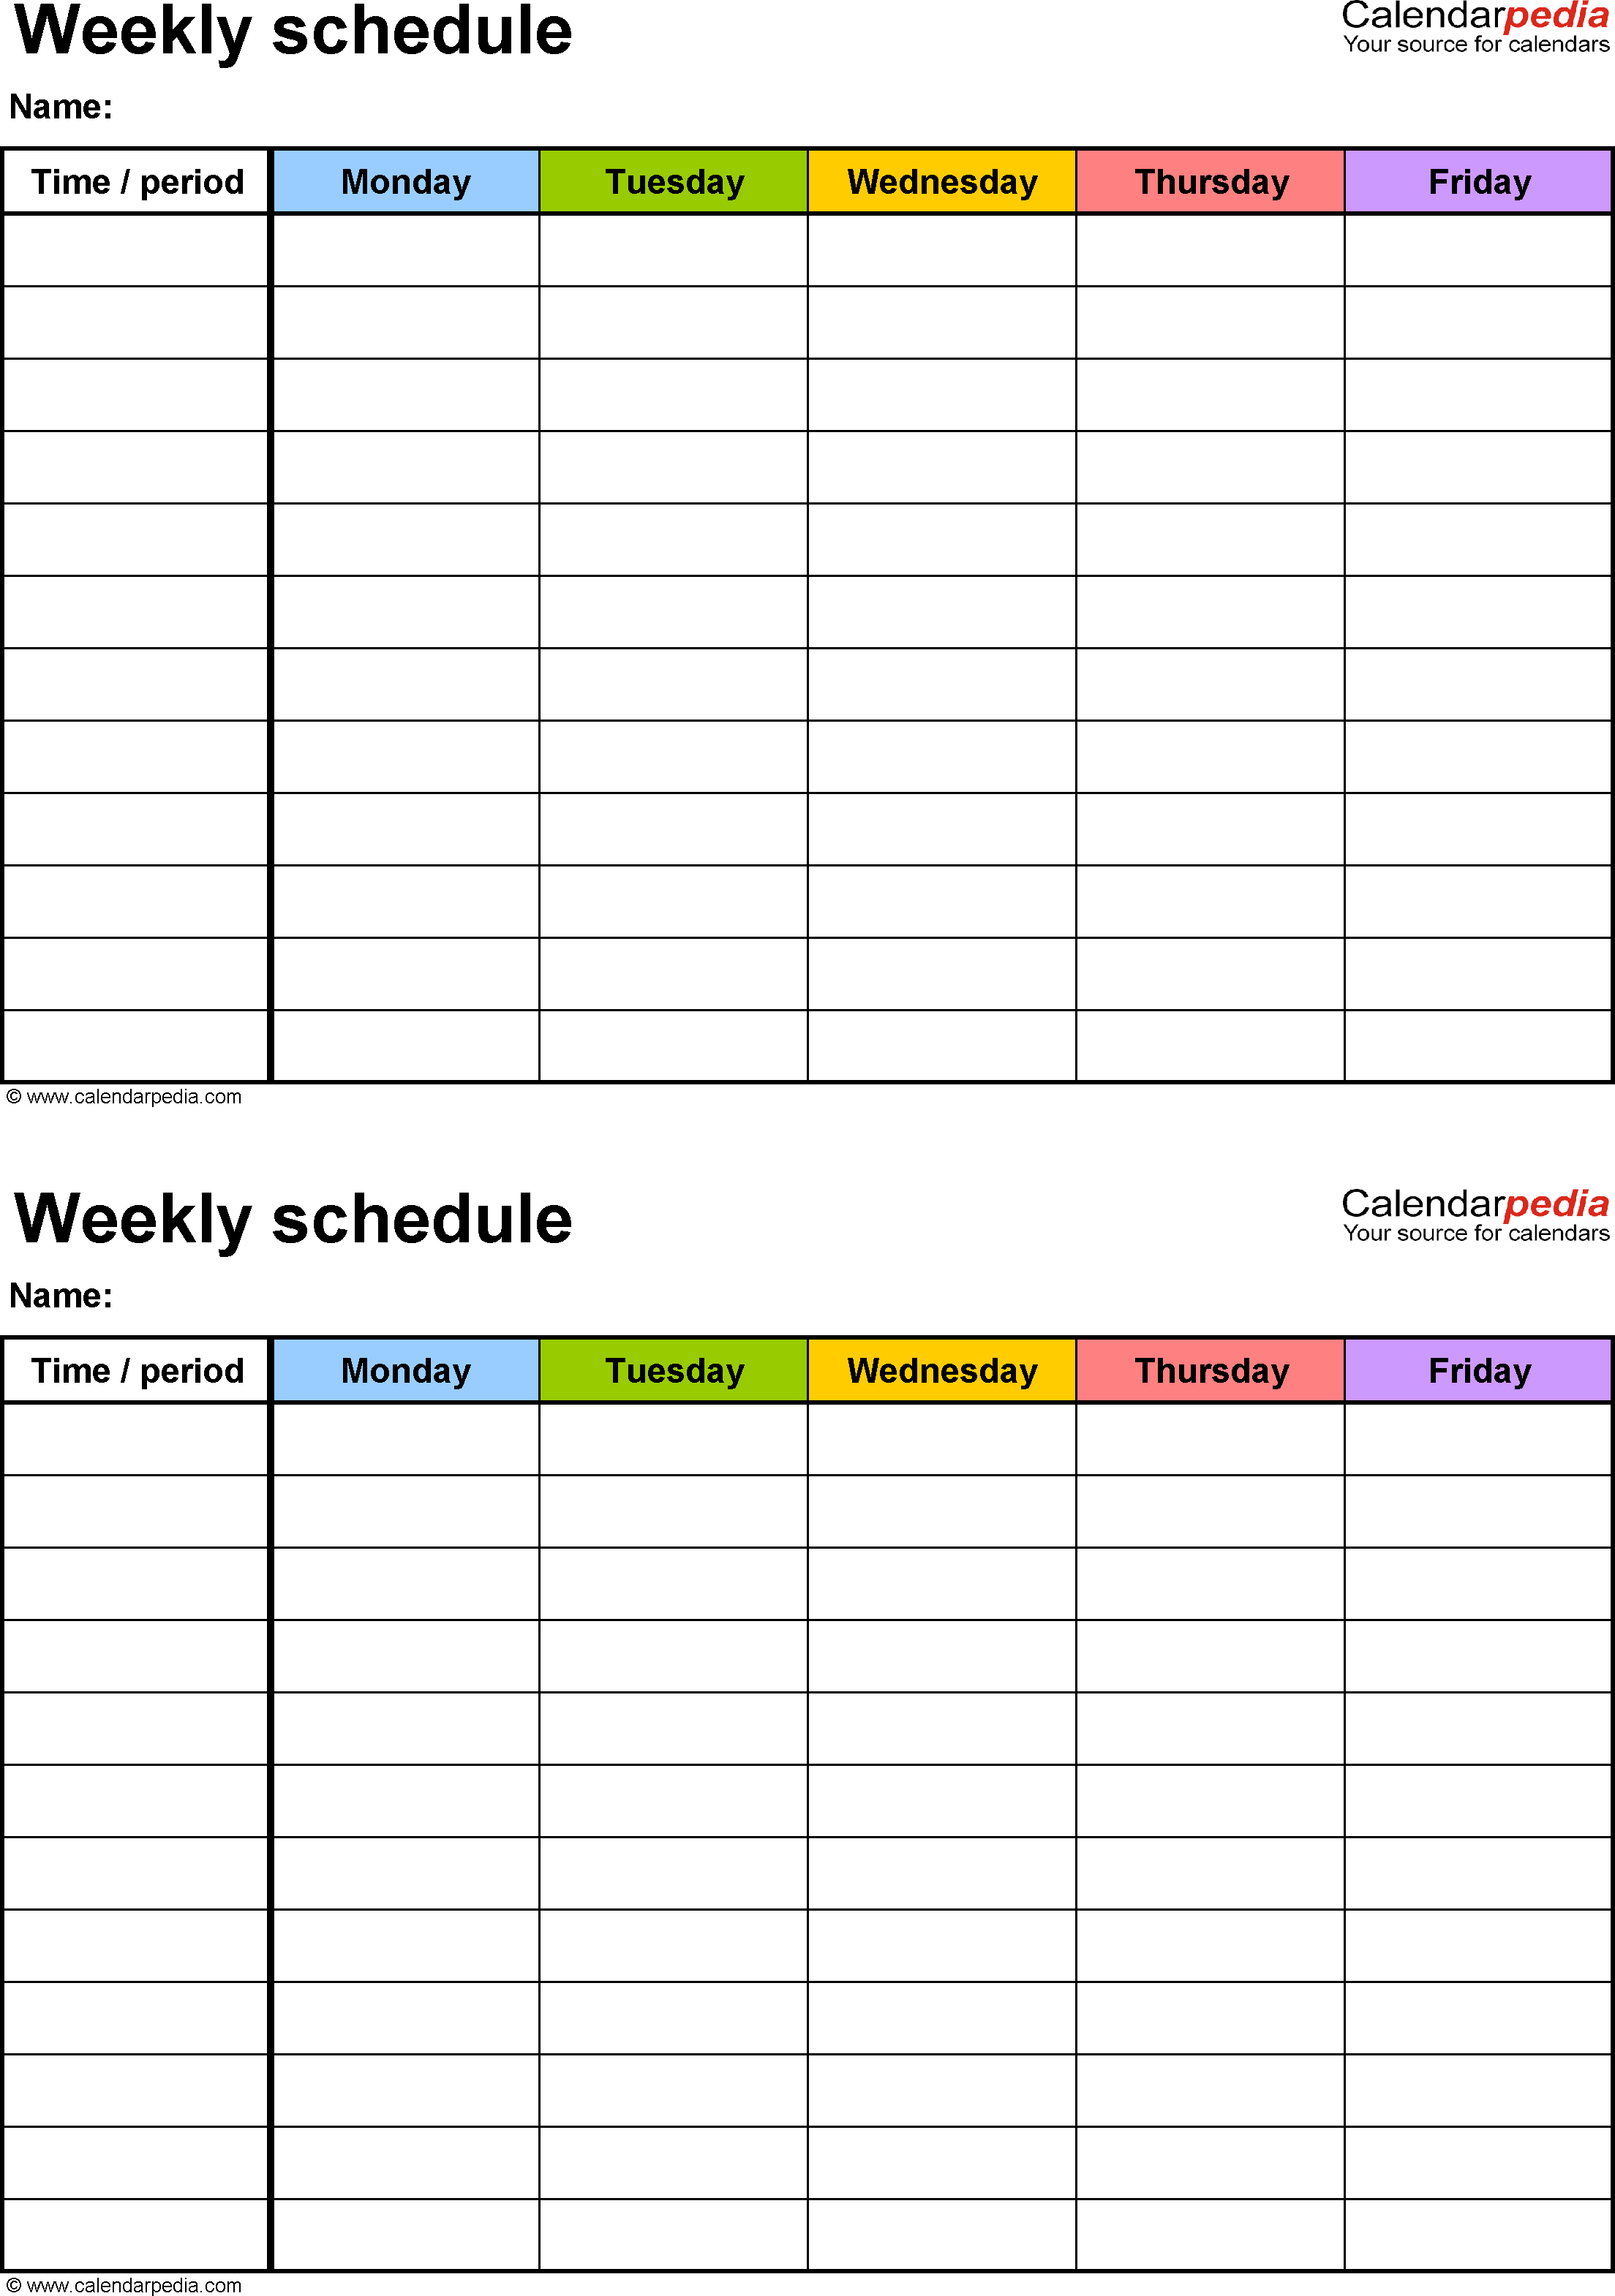 Free Weekly Schedule Templates For Word - 18 Templates with regard to Monday Through Friday Planner Template